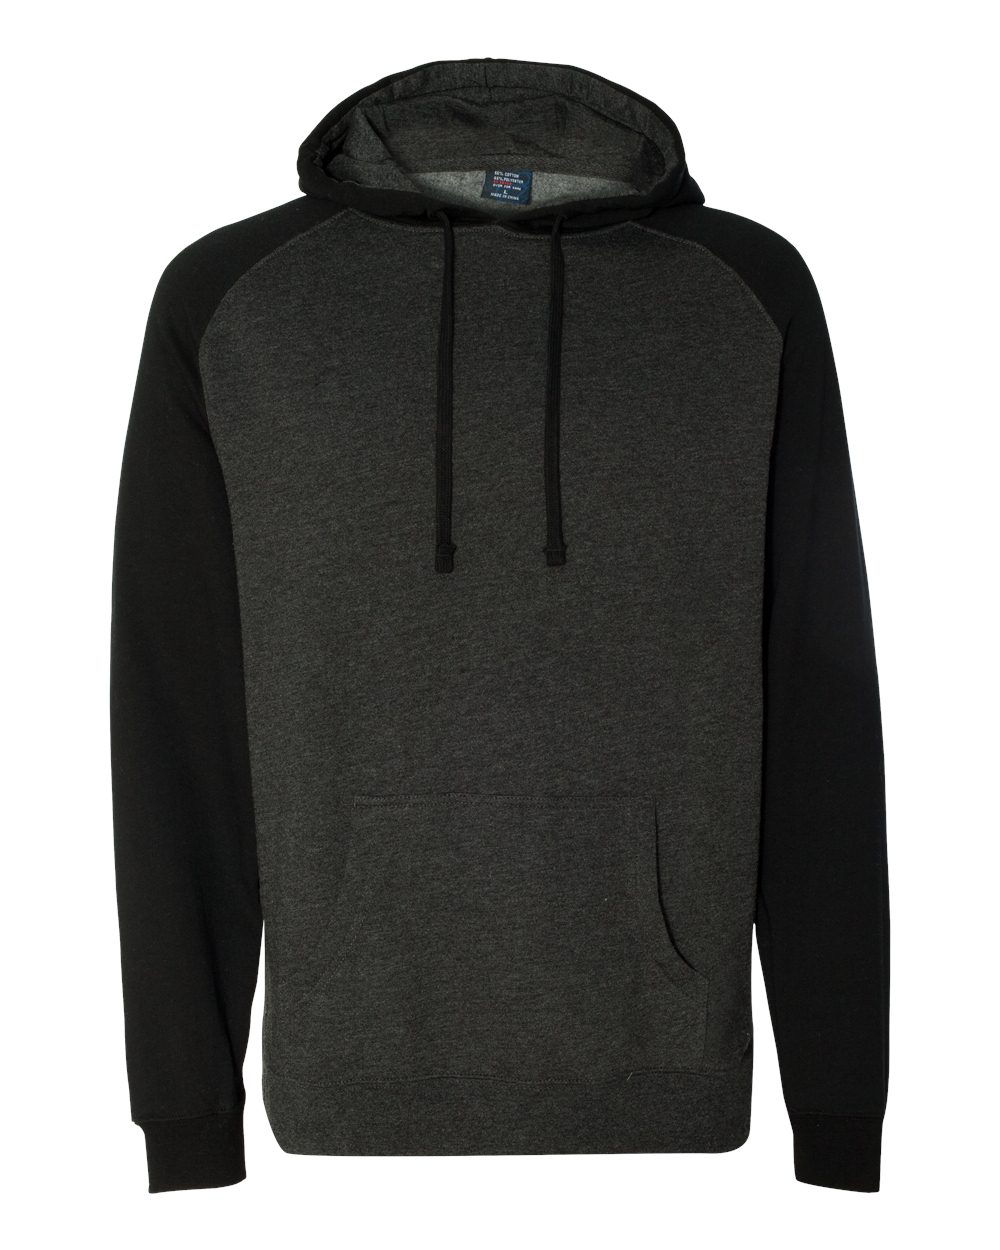 Independent-Trading-Co-Mens-Raglan-Hooded-Pullover-Sweatshirt-IND40RP-up-to-3XL miniature 9